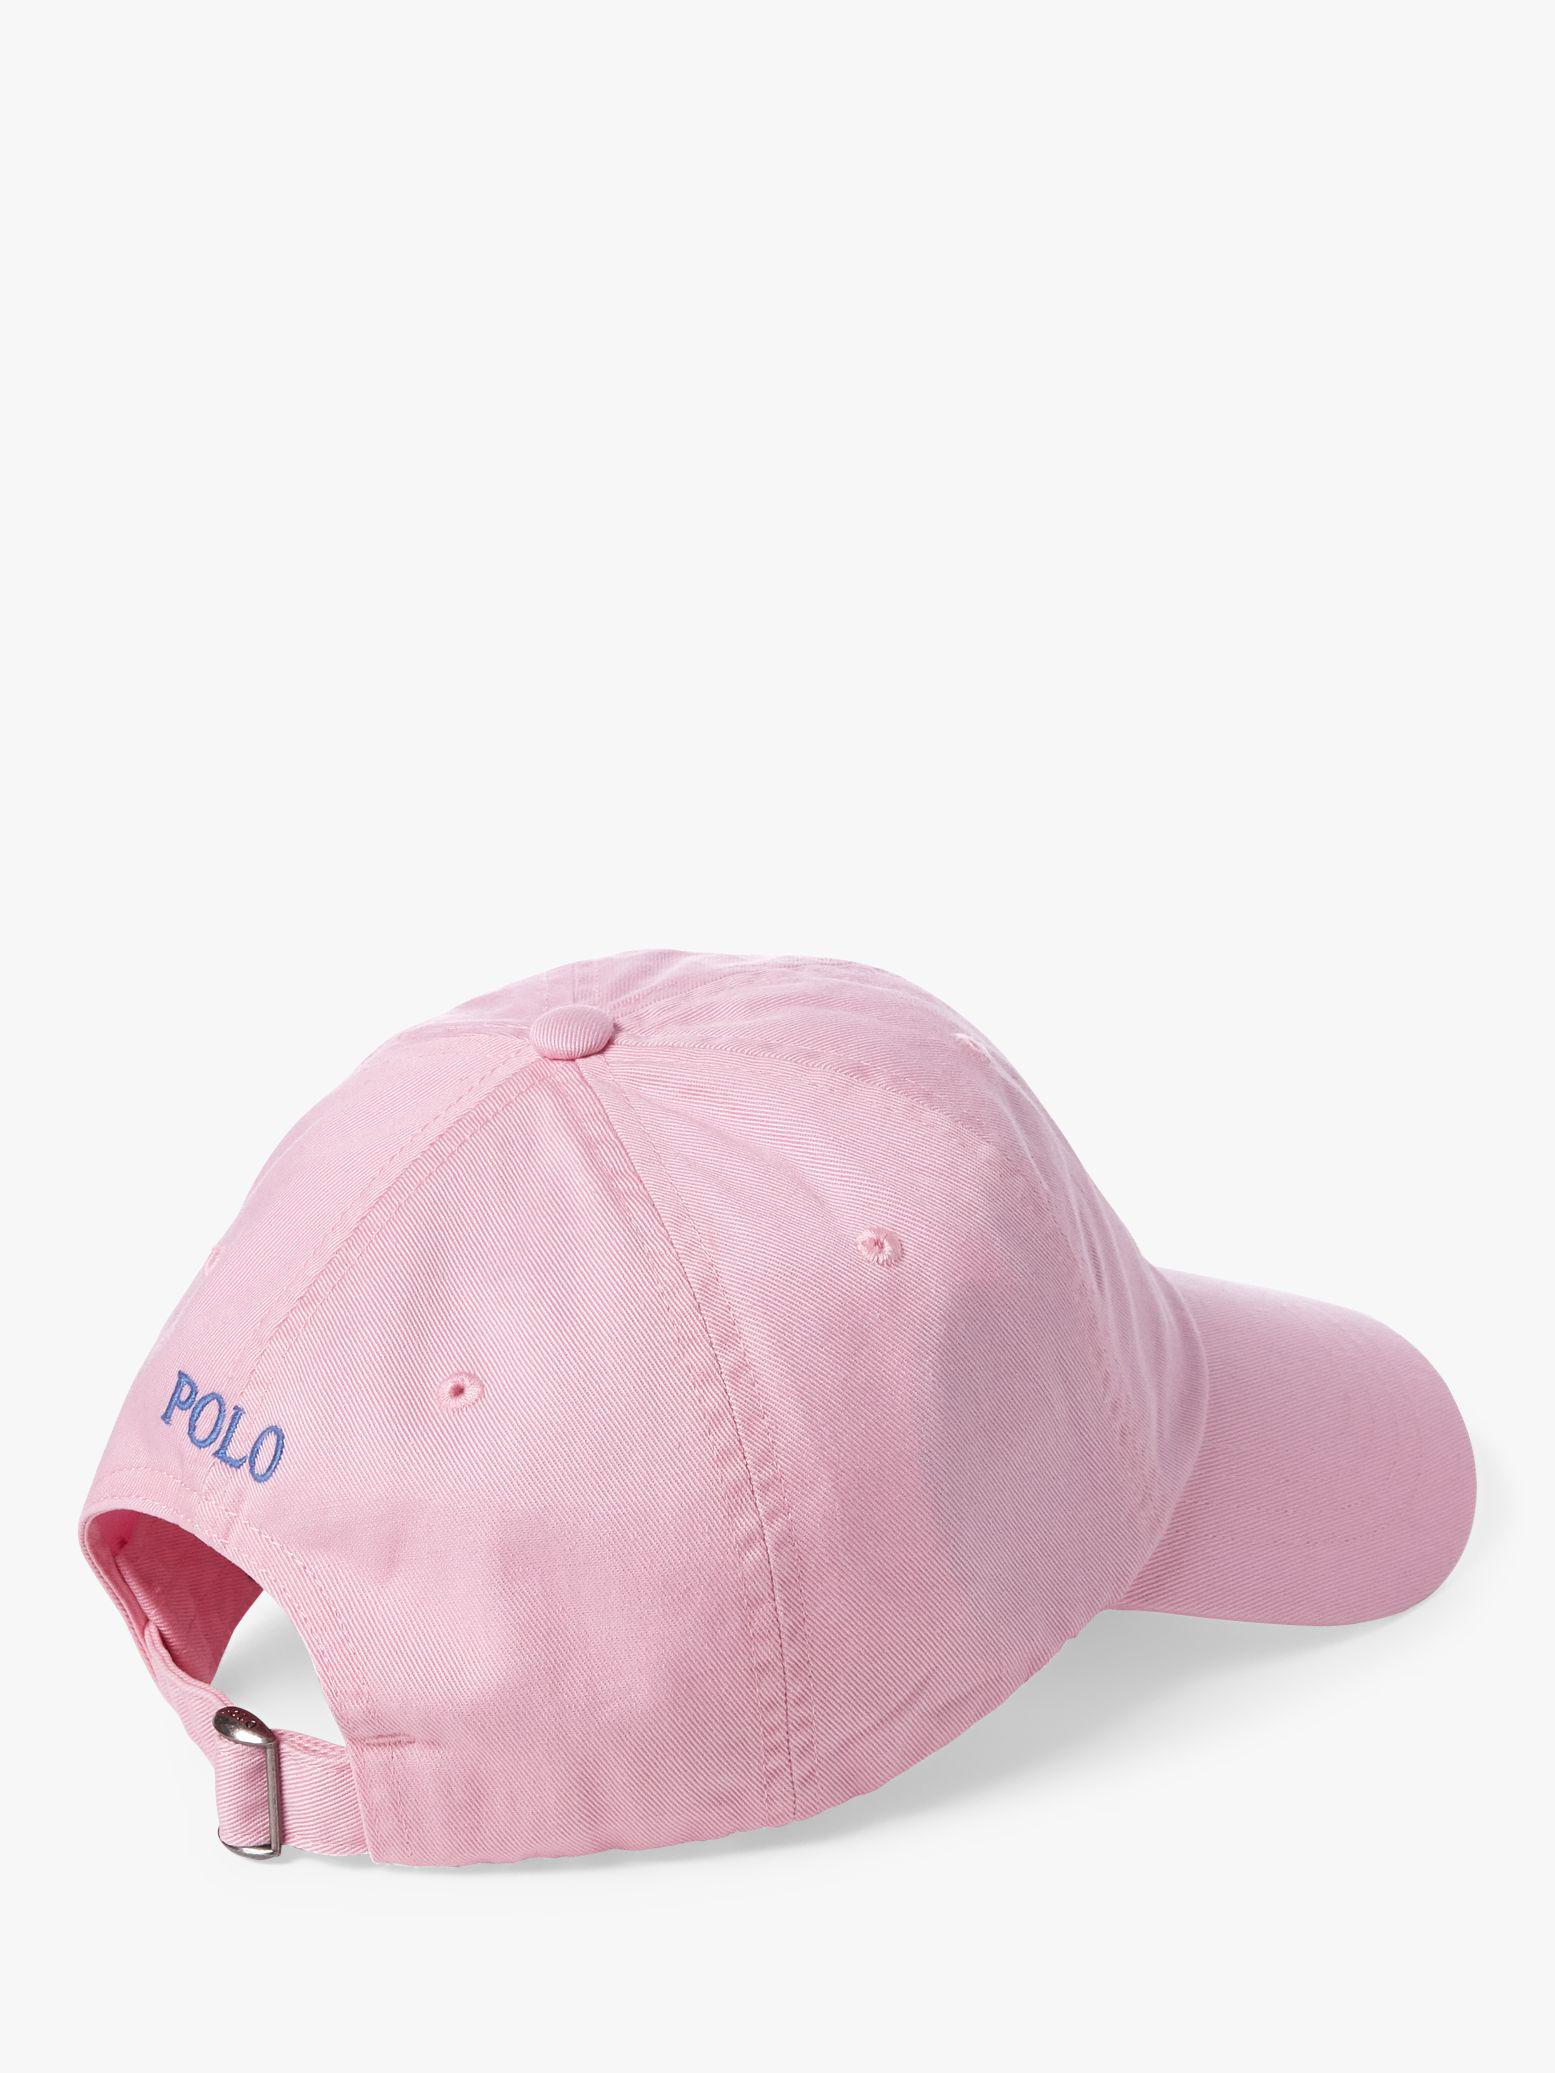 735edde8f4b3c Ralph Lauren Polo Signature Pony Baseball Cap in Pink for Men - Save ...